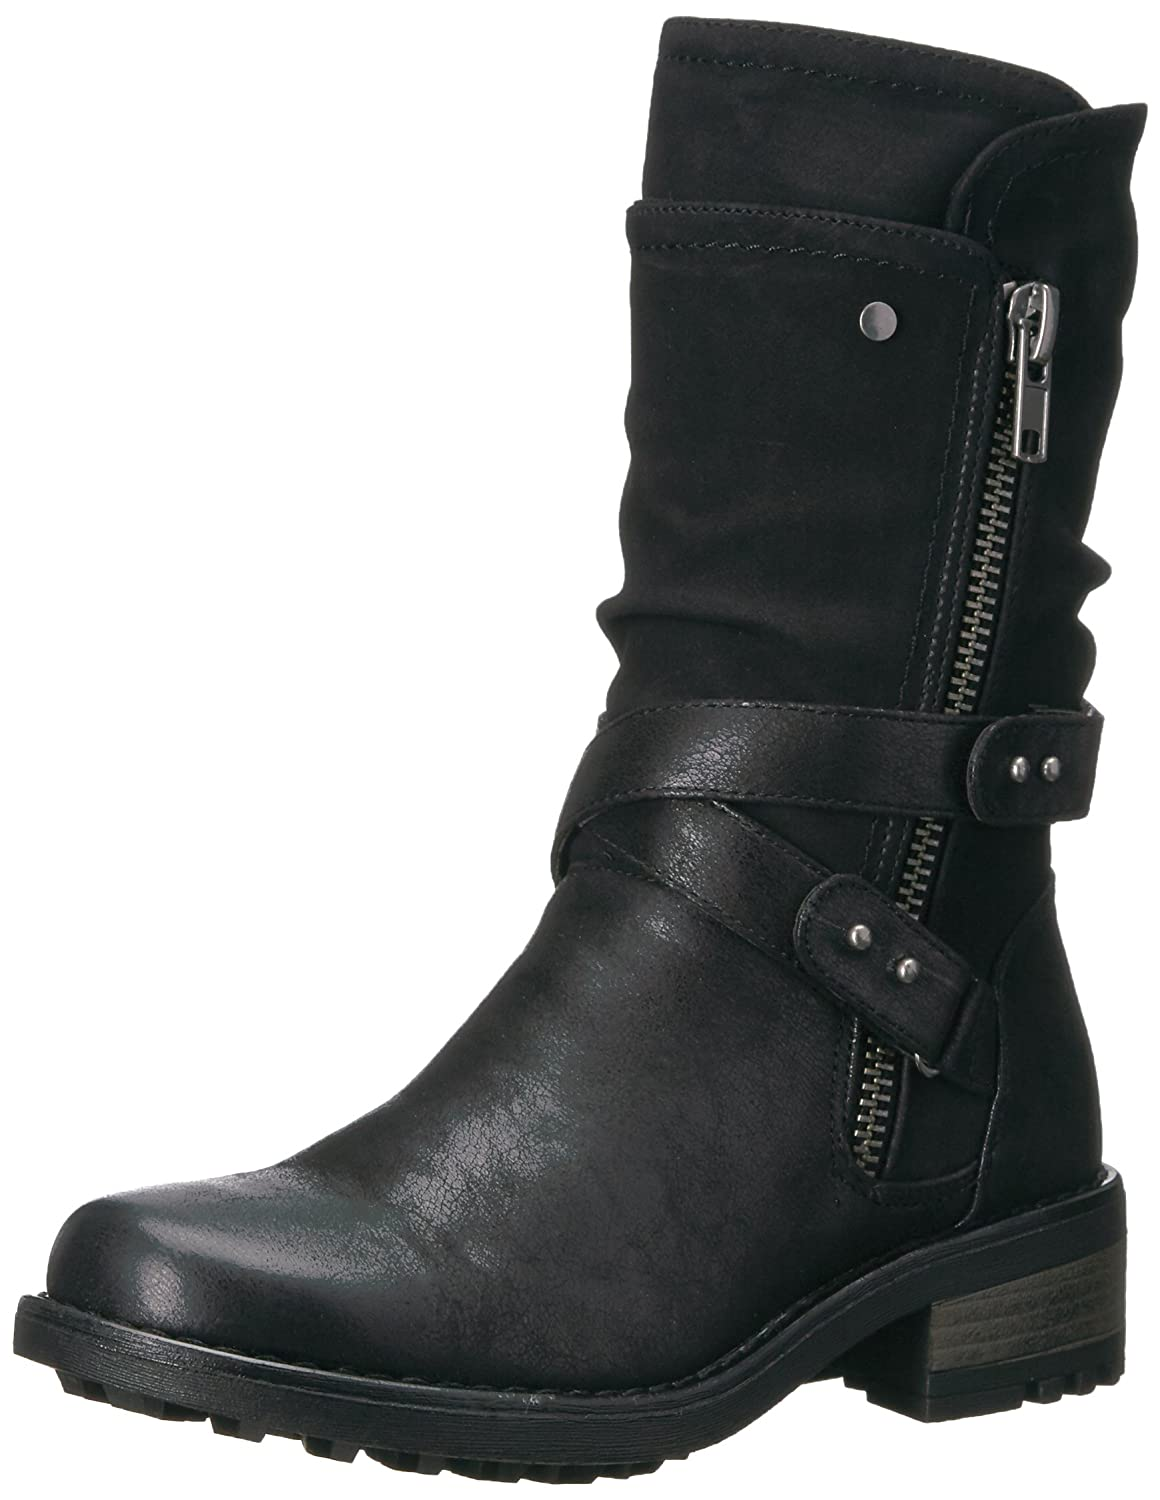 Carlos by Carlos Santana Women's Sawyer Fashion Boot B06XJCWFRS 8.5 M M US|Black